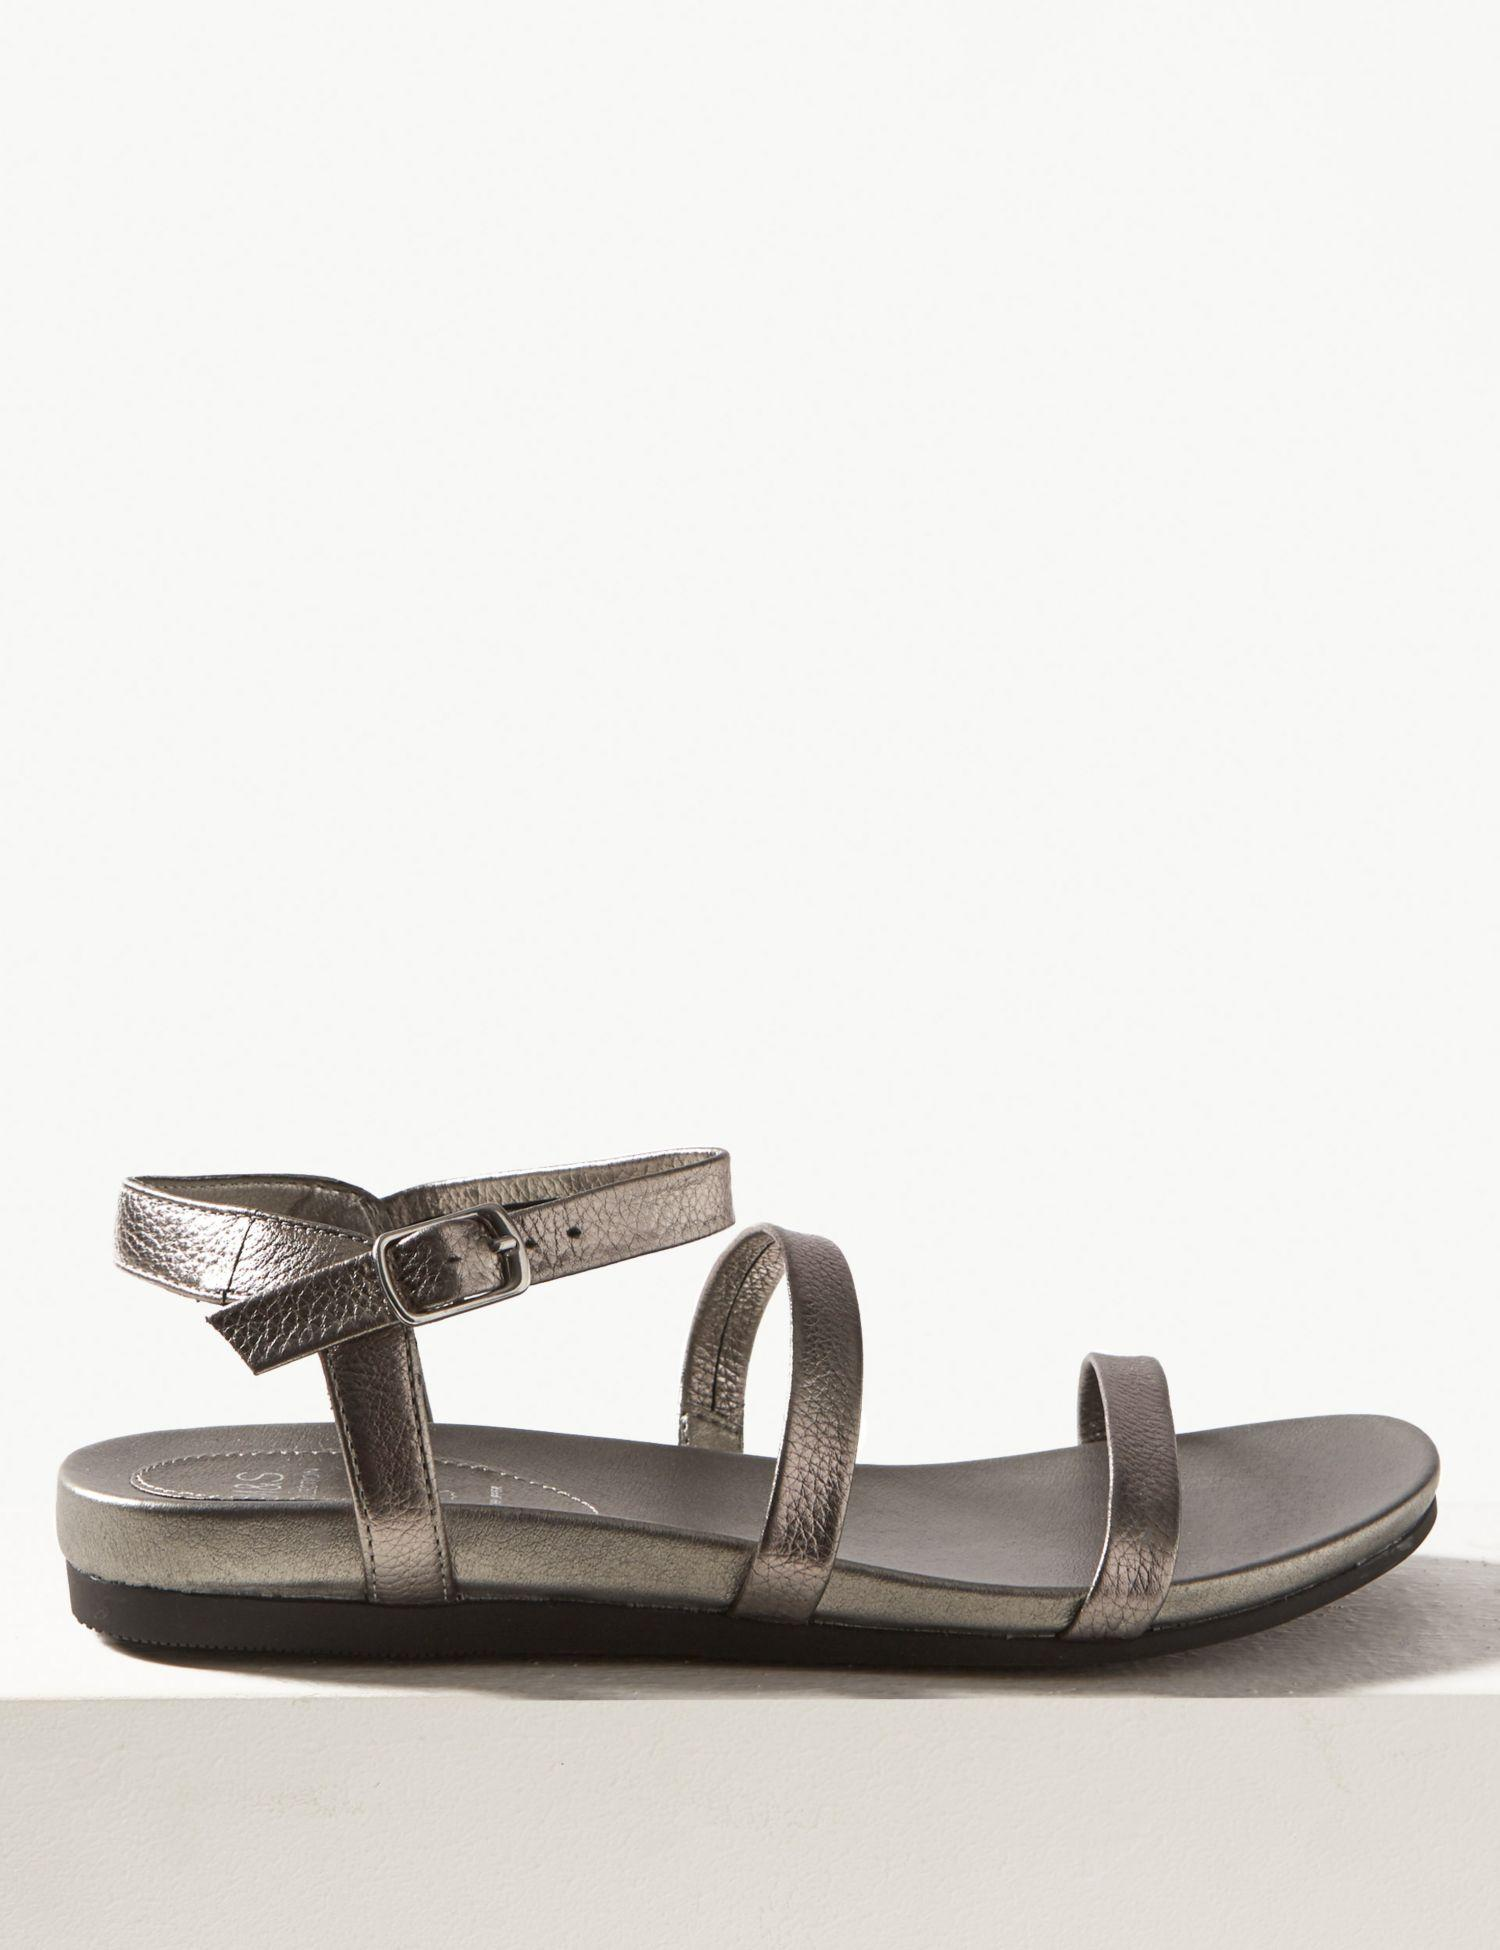 27c75f8e7d8 Marks   Spencer Wide Fit Leather Ankle Strap Sandals in Metallic - Lyst